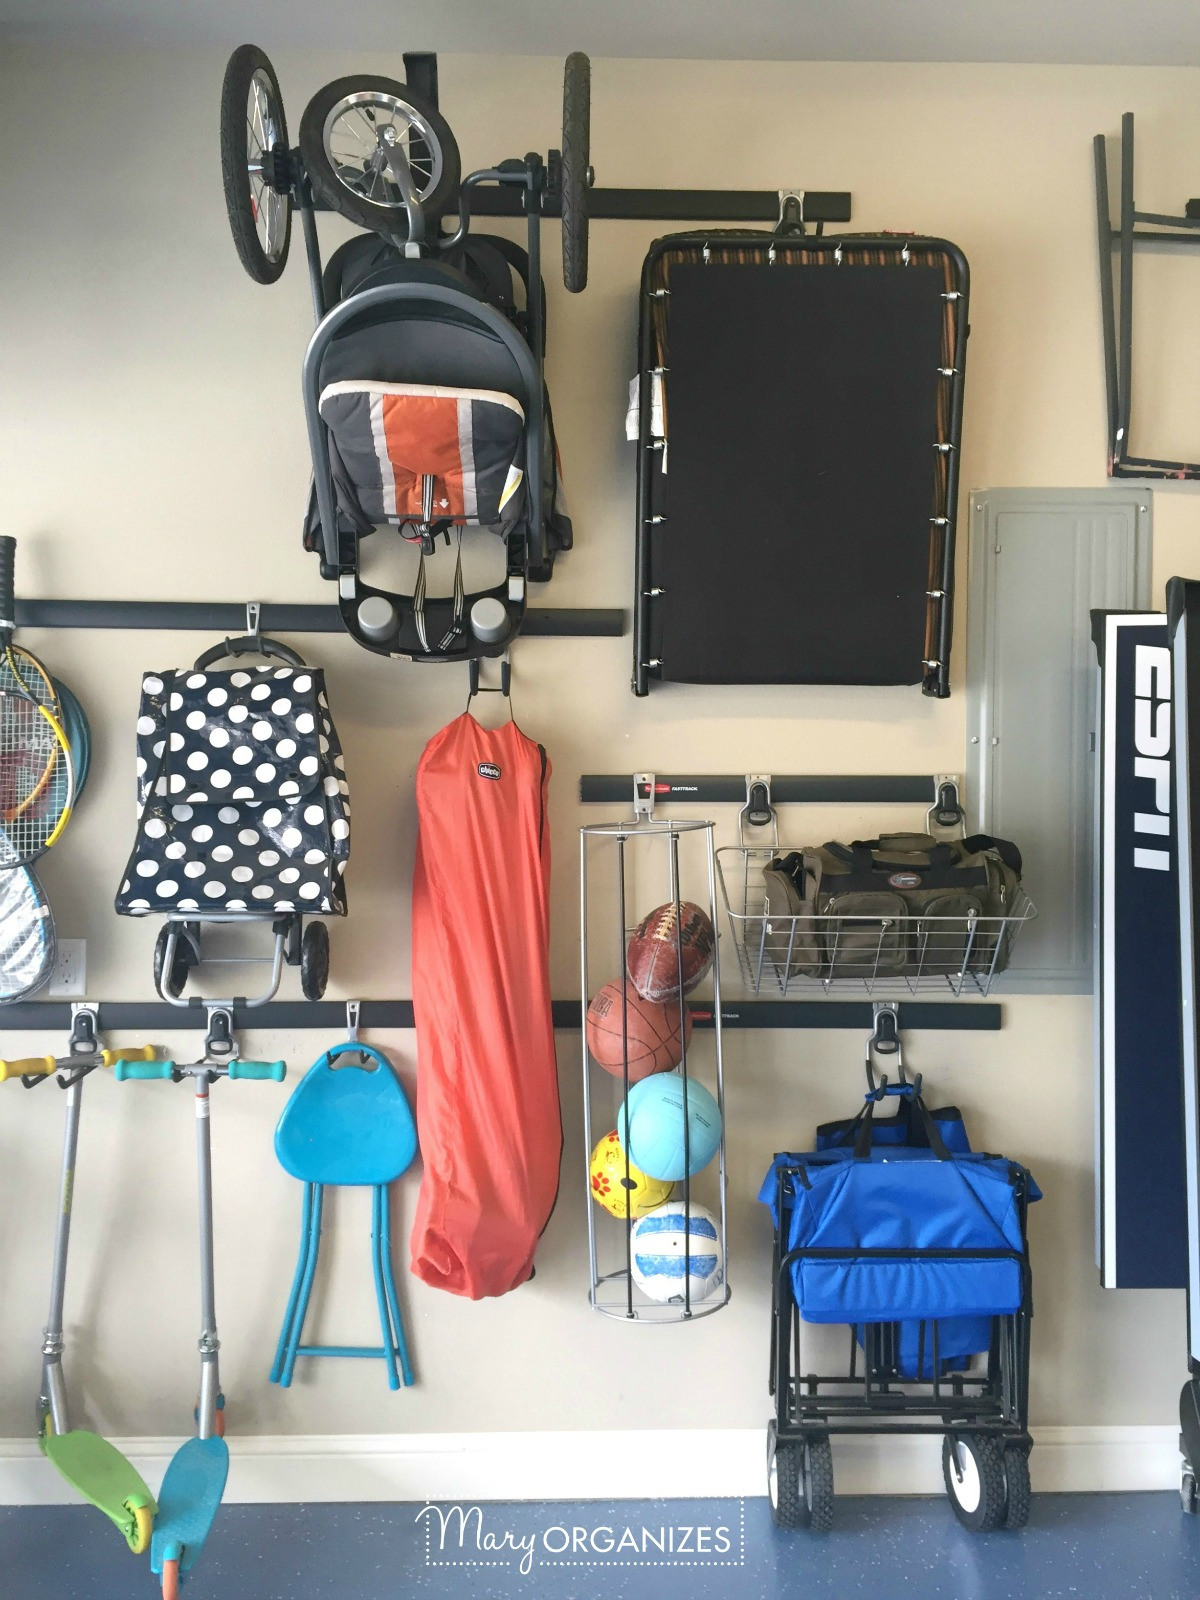 Garage Organizing - How to hang bikes scooters ripsticks balls and more -g7